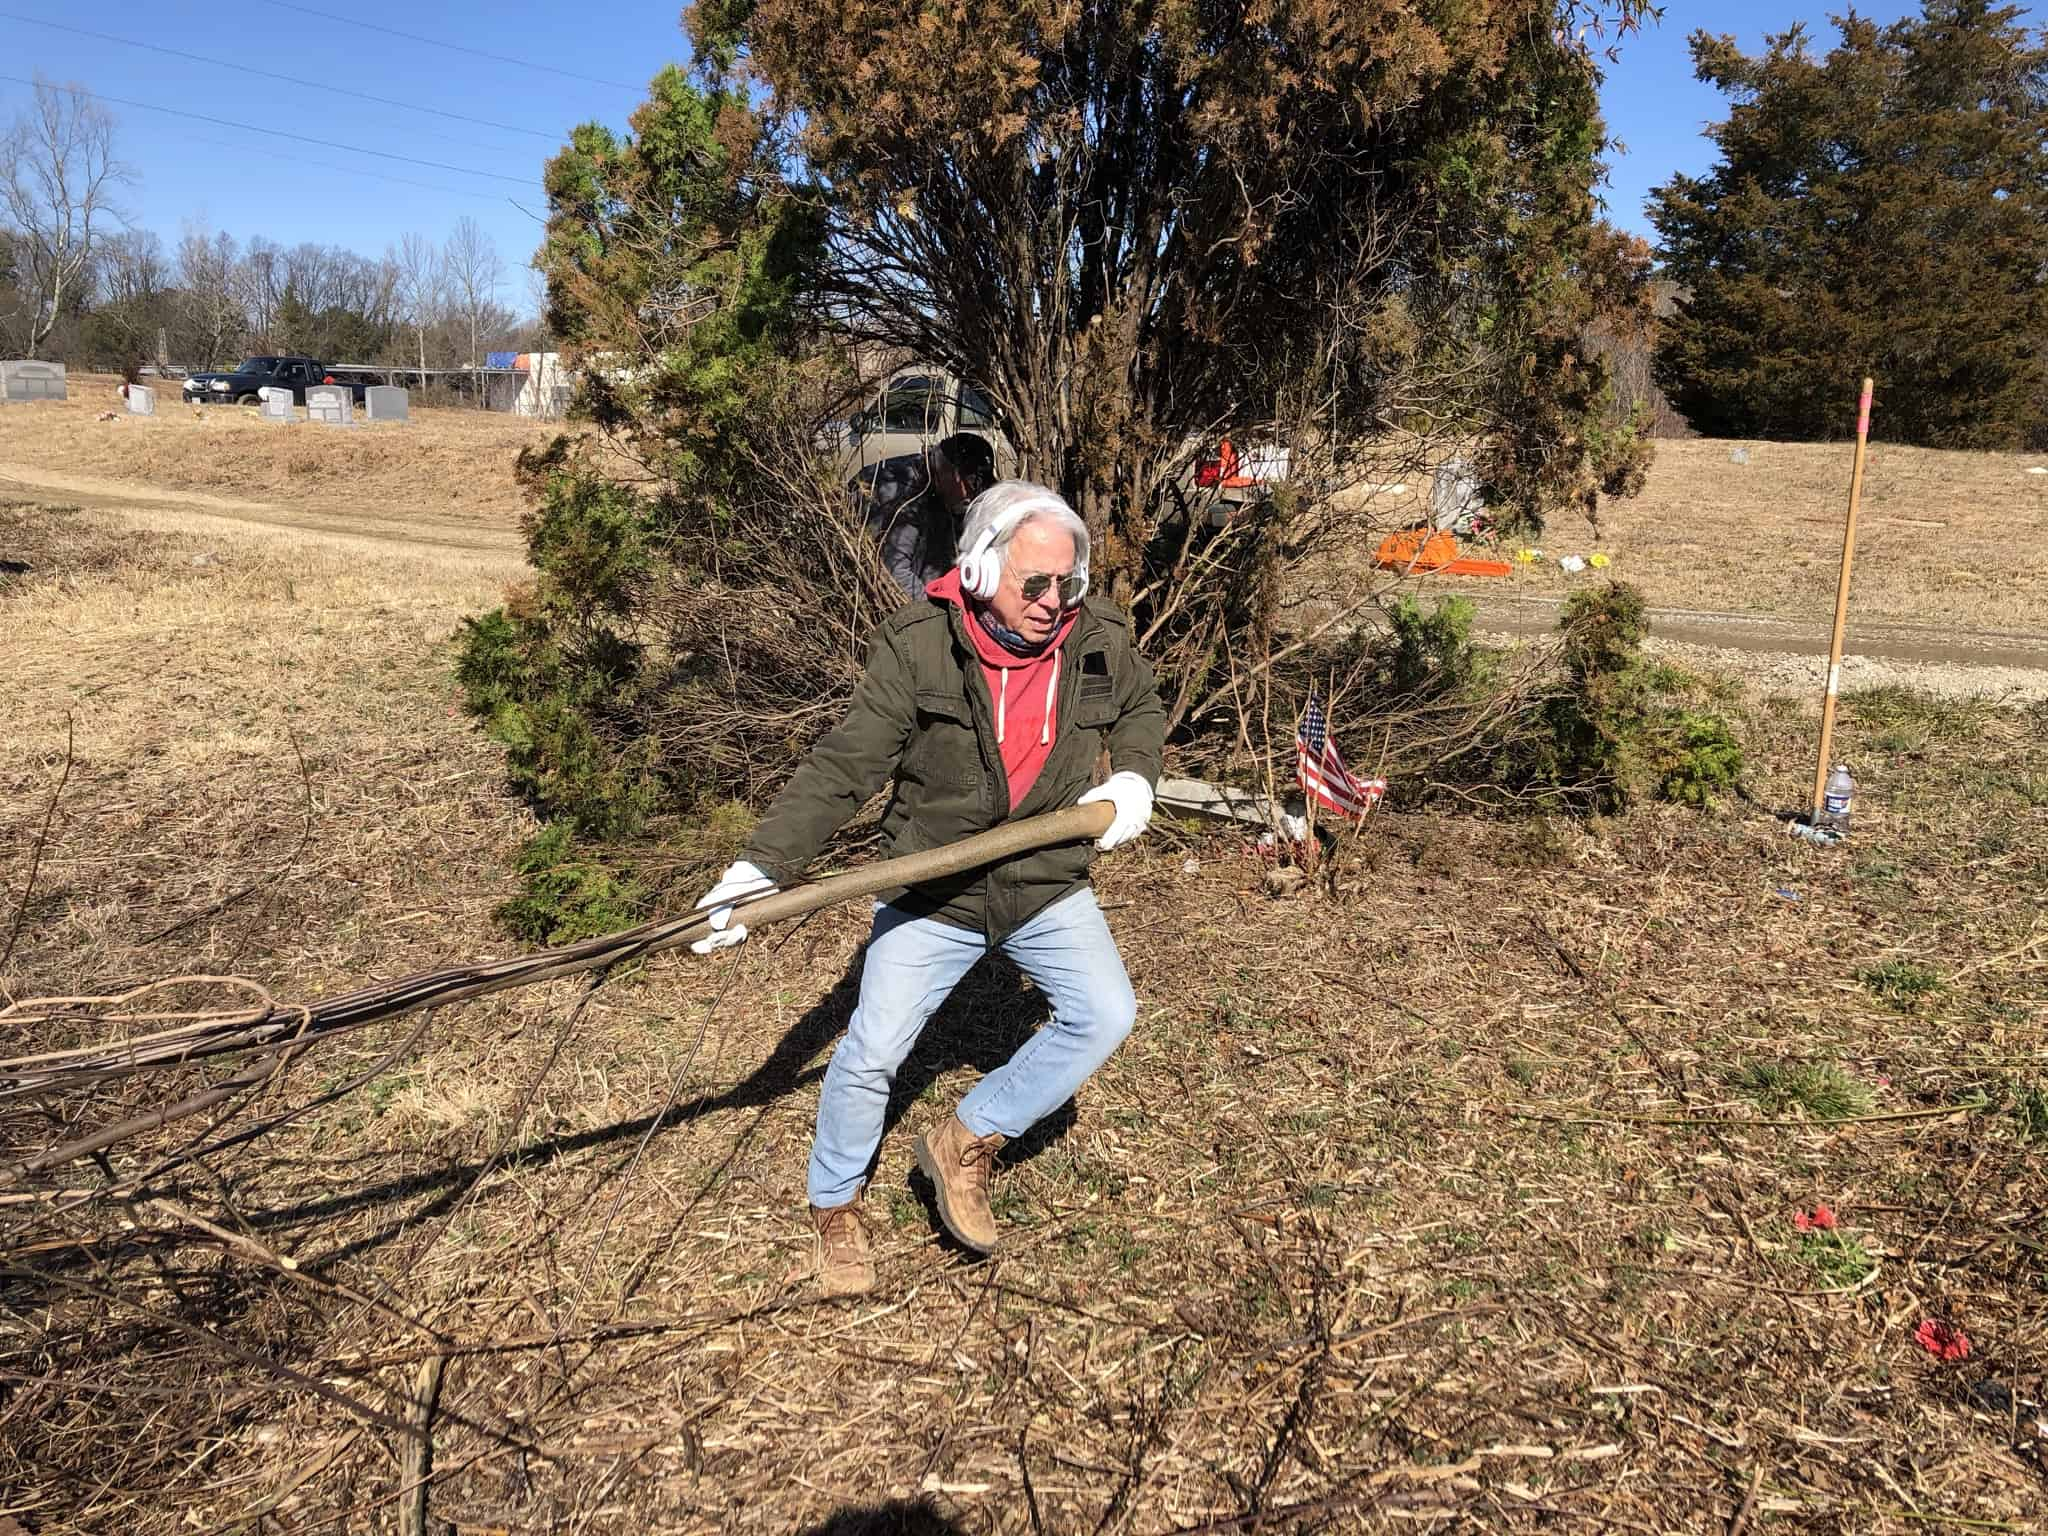 Volunteer clearing brush at Woodland Cemetery, a historic African American cemetery in Richmond, Virginia